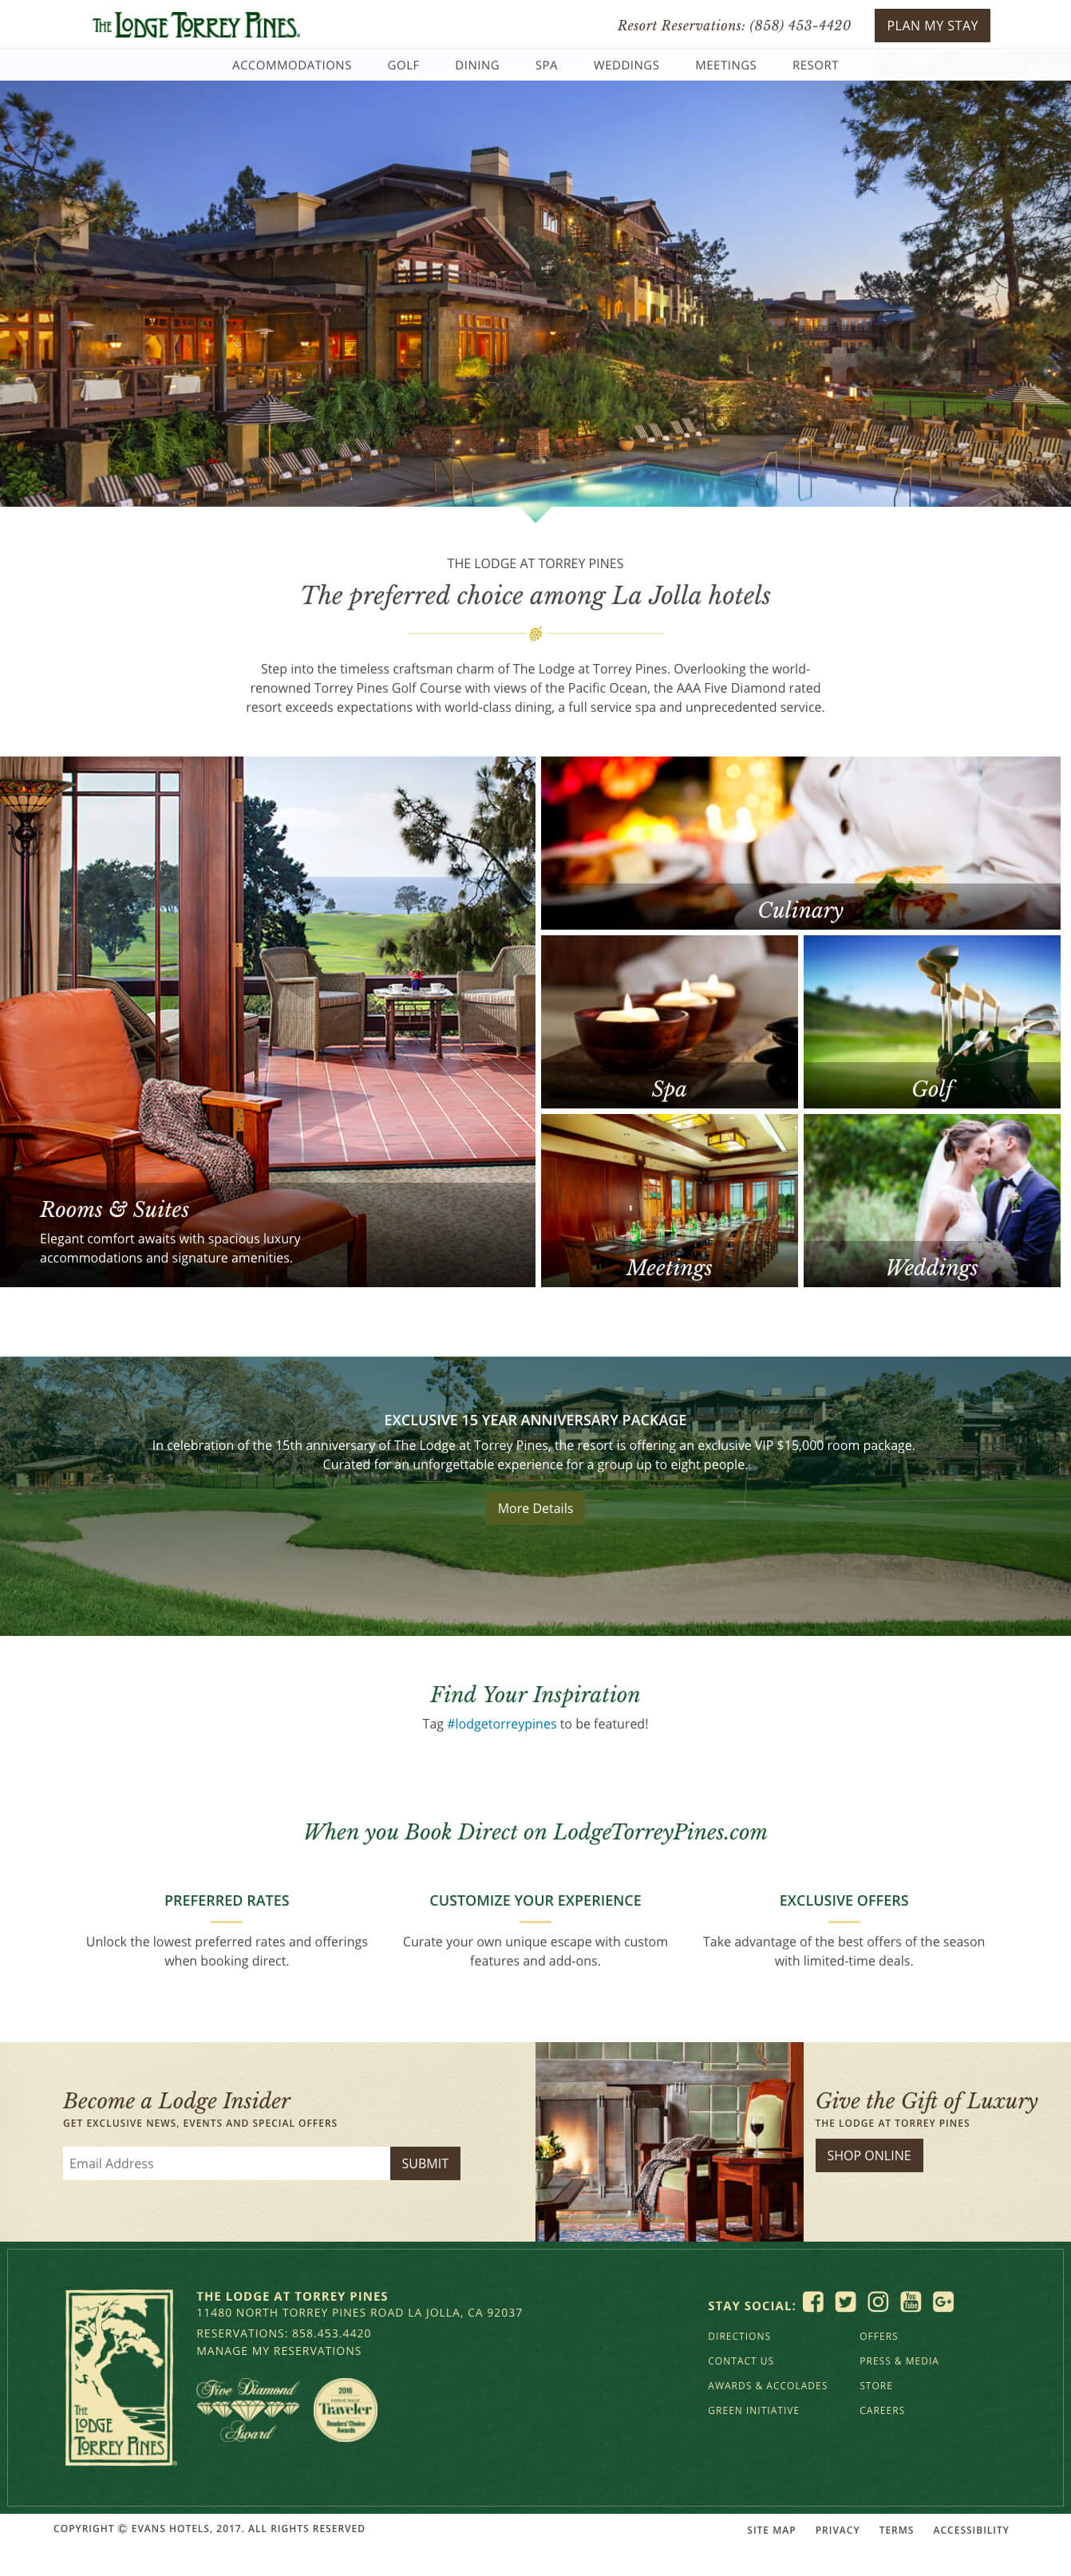 Screen shot of the Lodge at Torrey Pines homepage